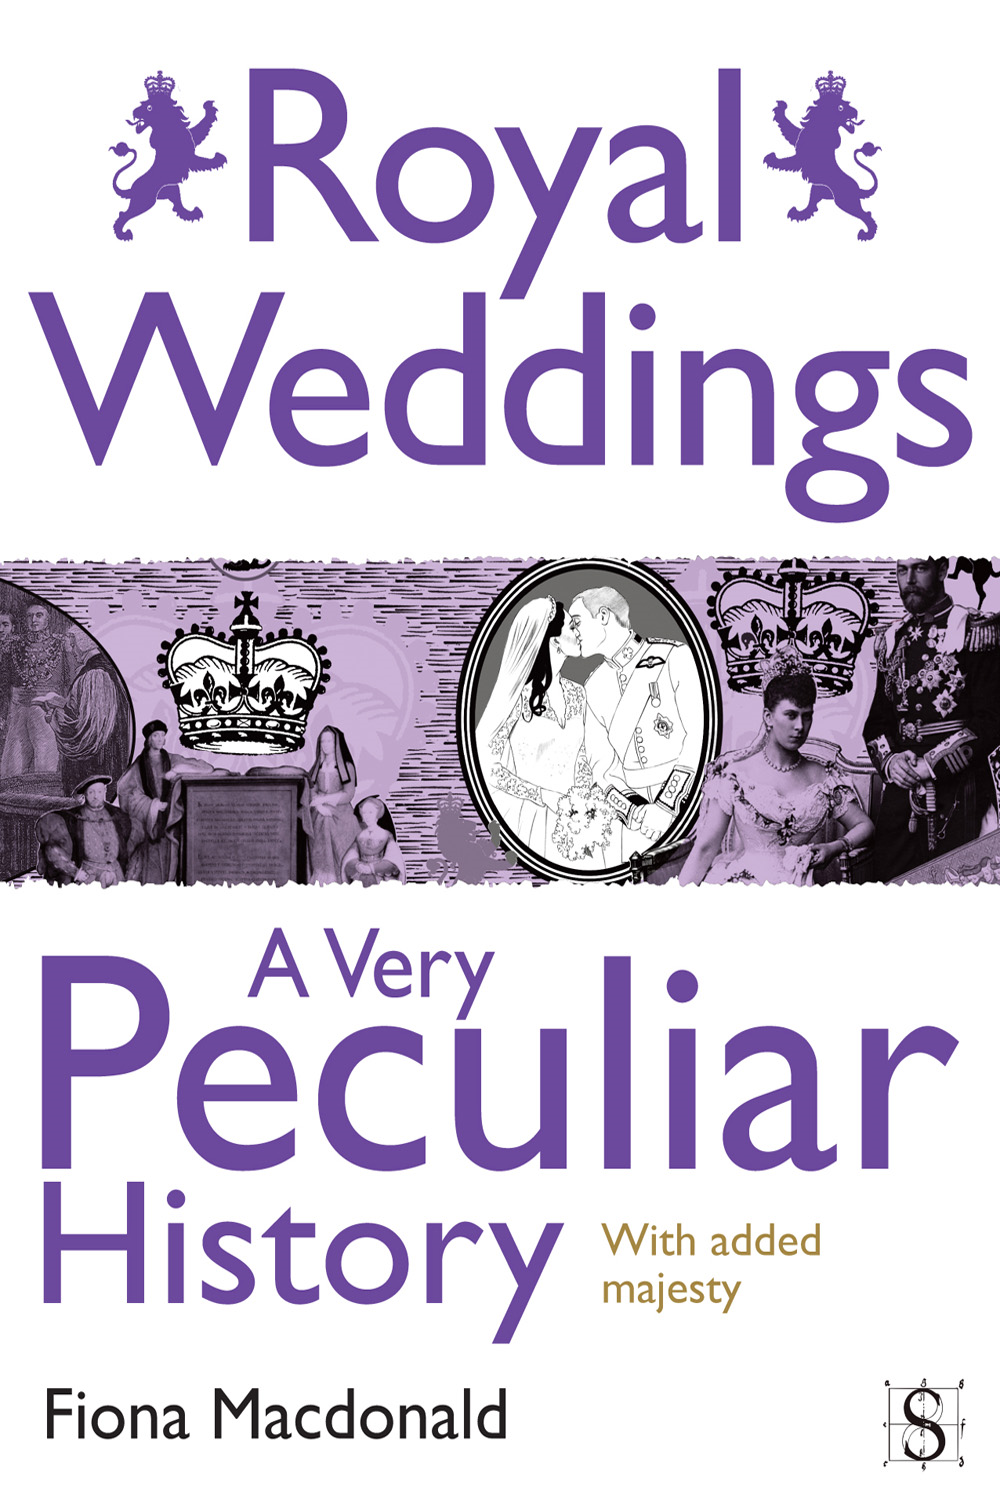 Royal Weddings, A Very Peculiar History